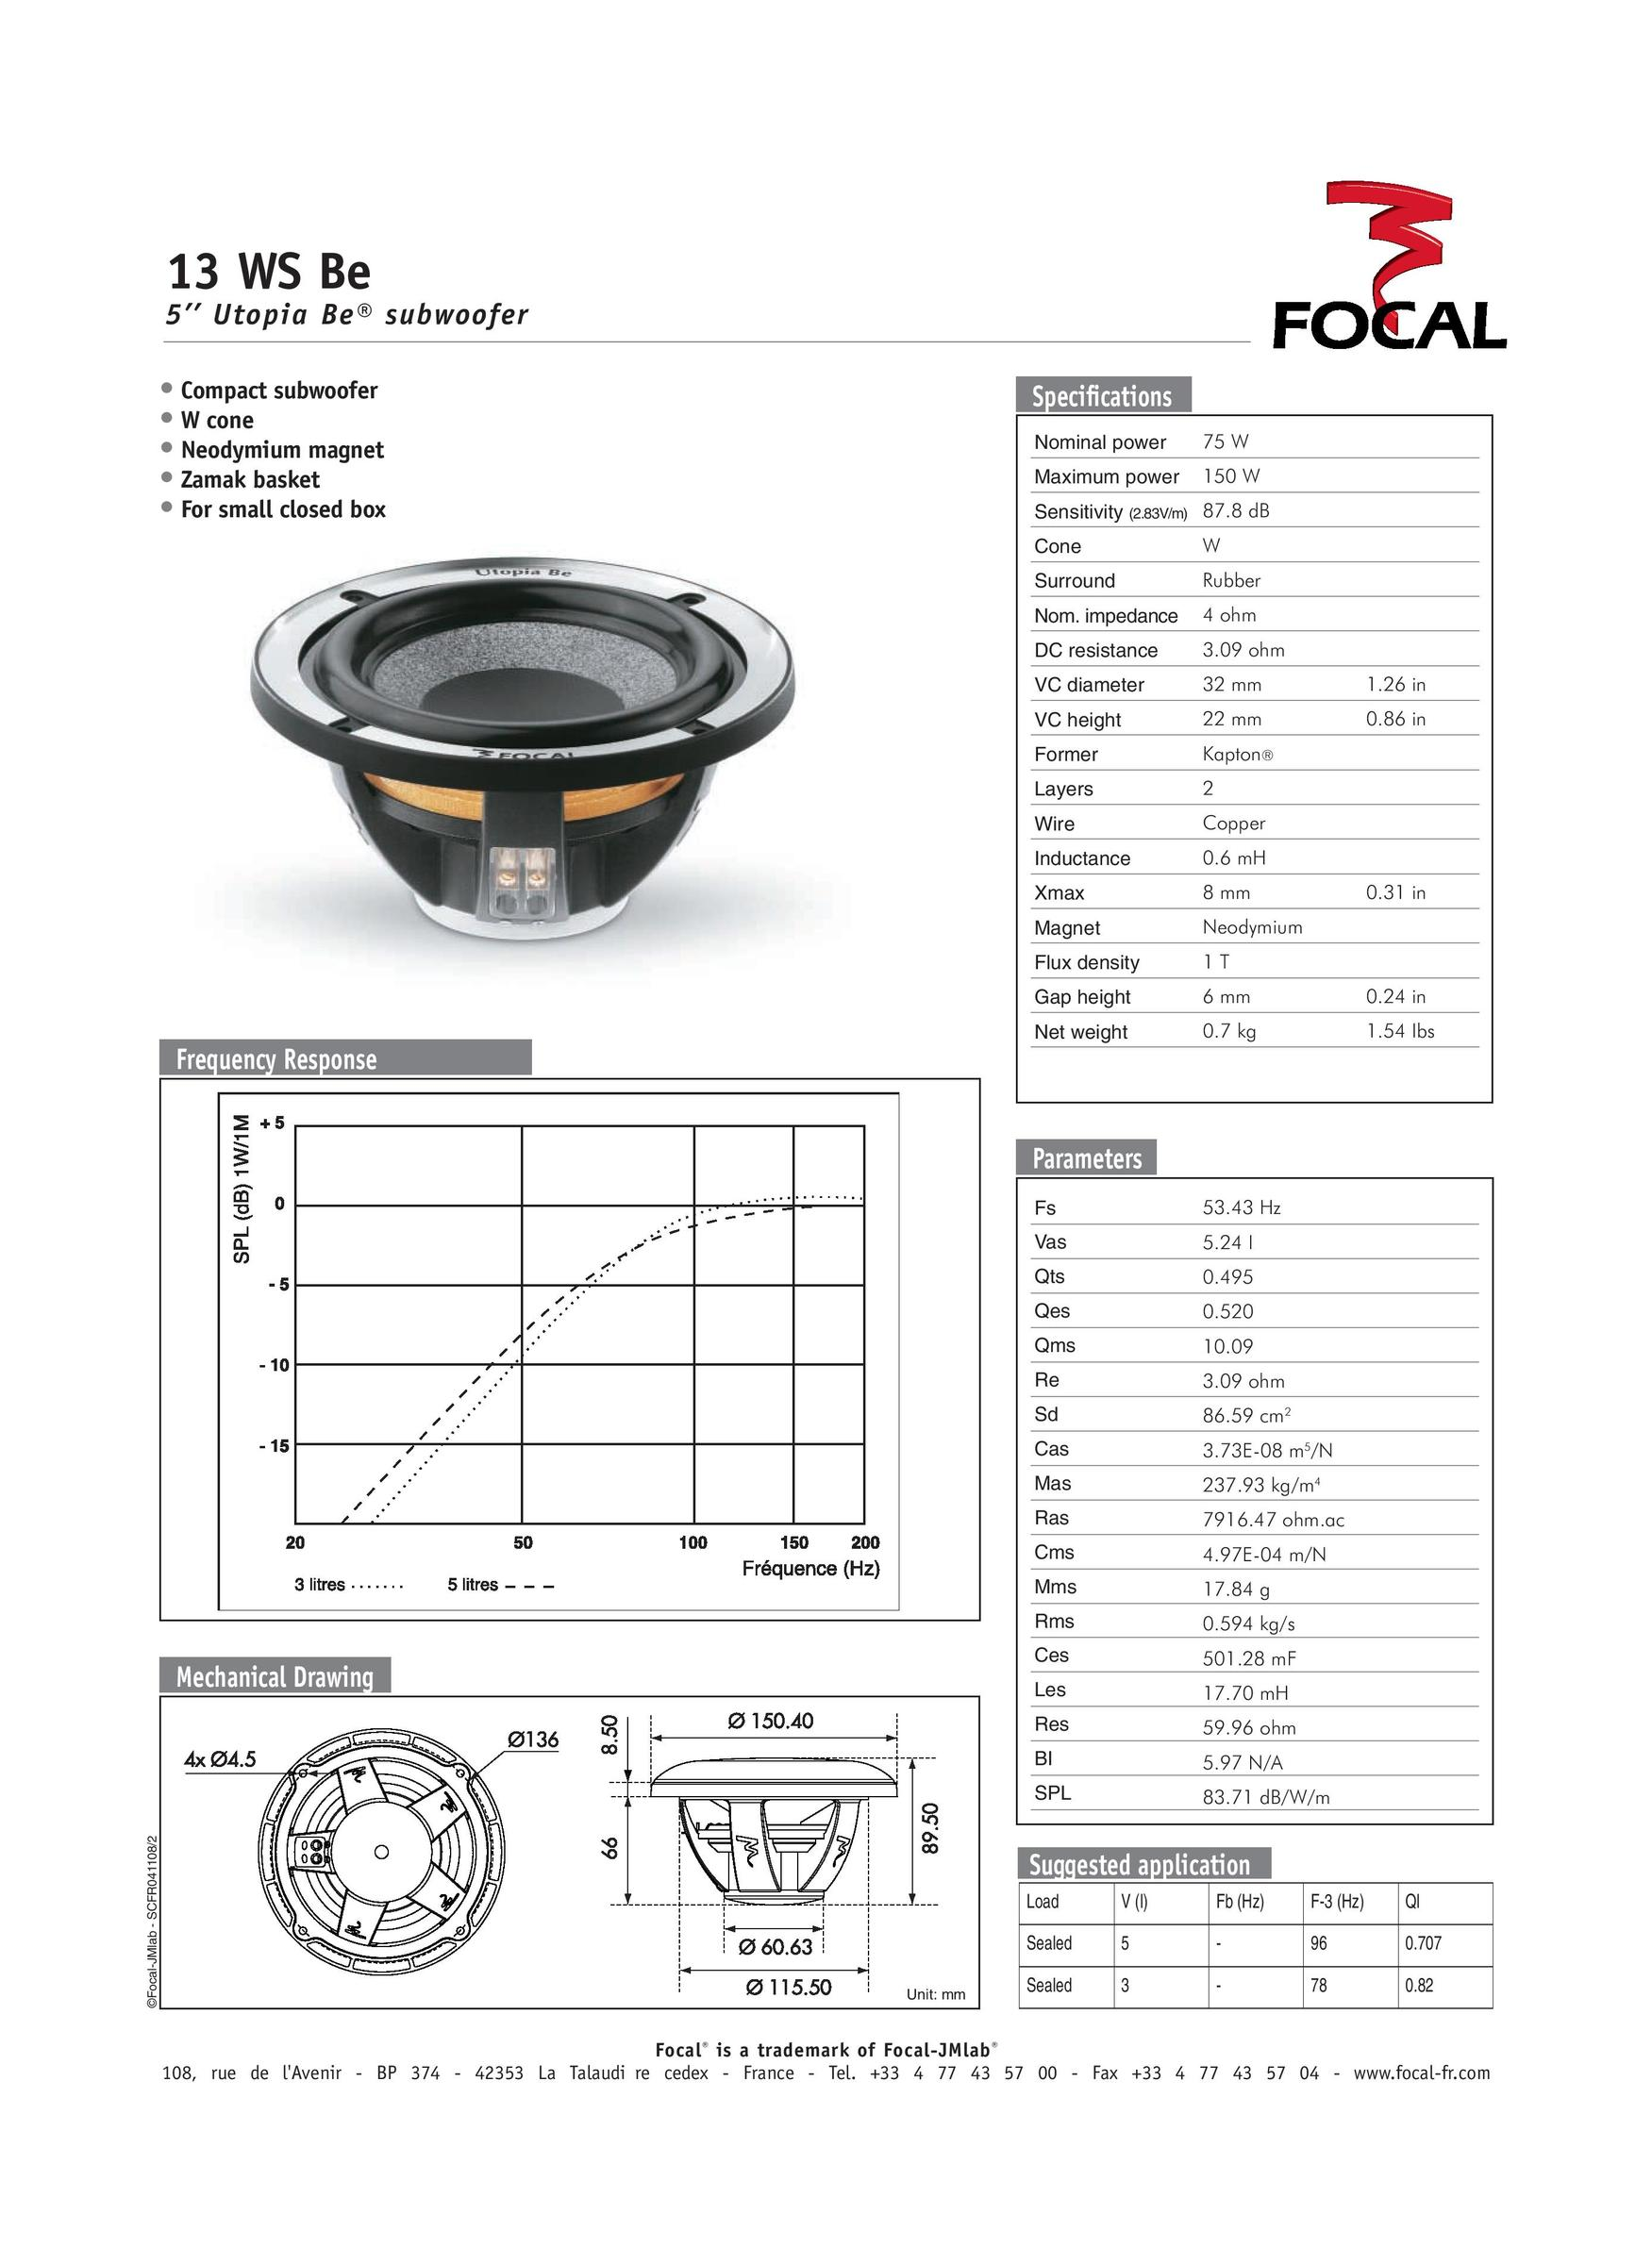 Focal Elite Utopia Be 13 Ws 5 4ohm 150w Subwoofer Kklau